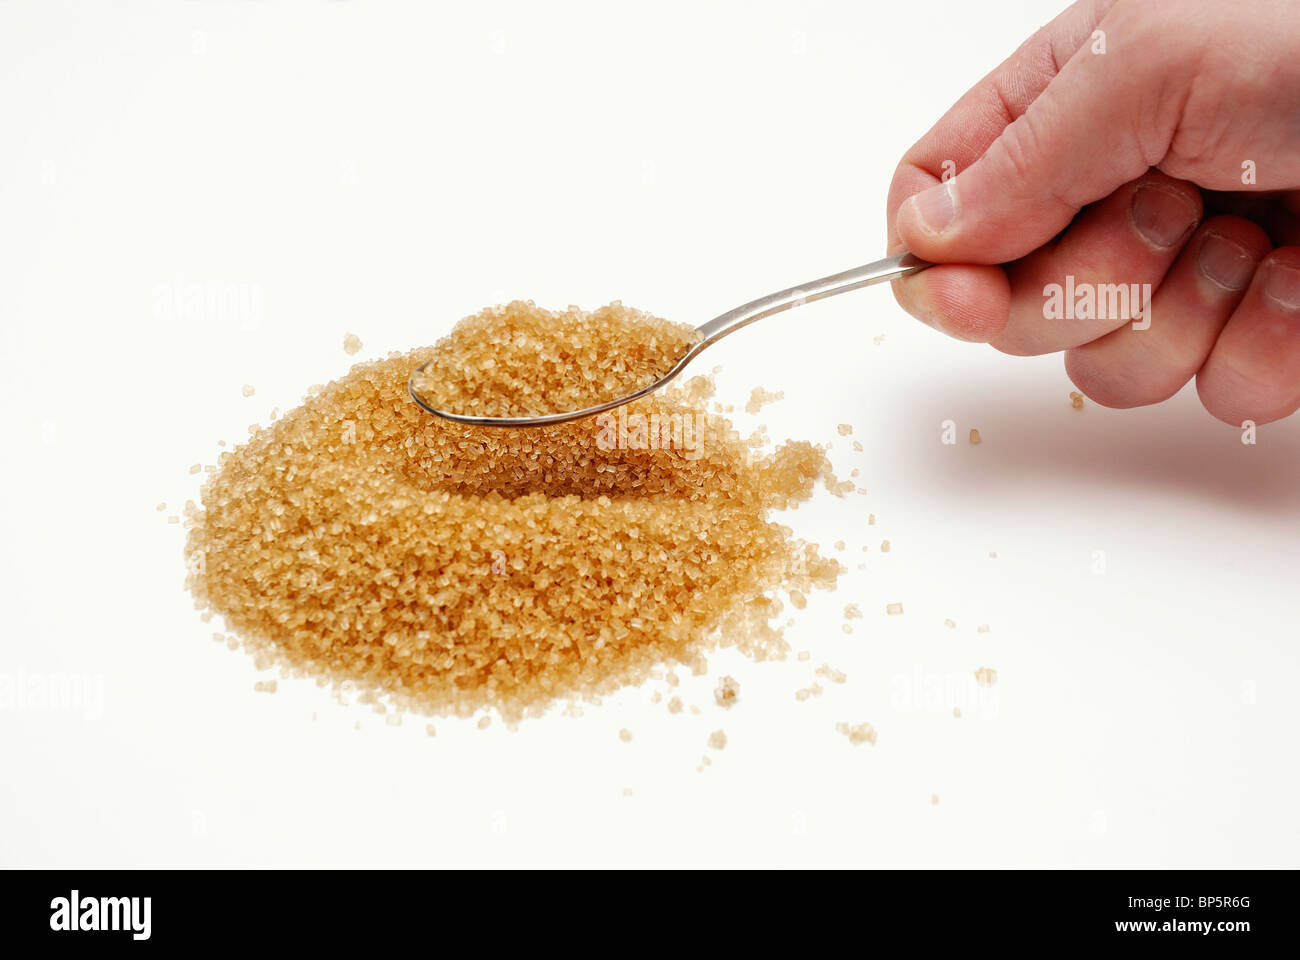 A pile of Brown sugar - Stock Image